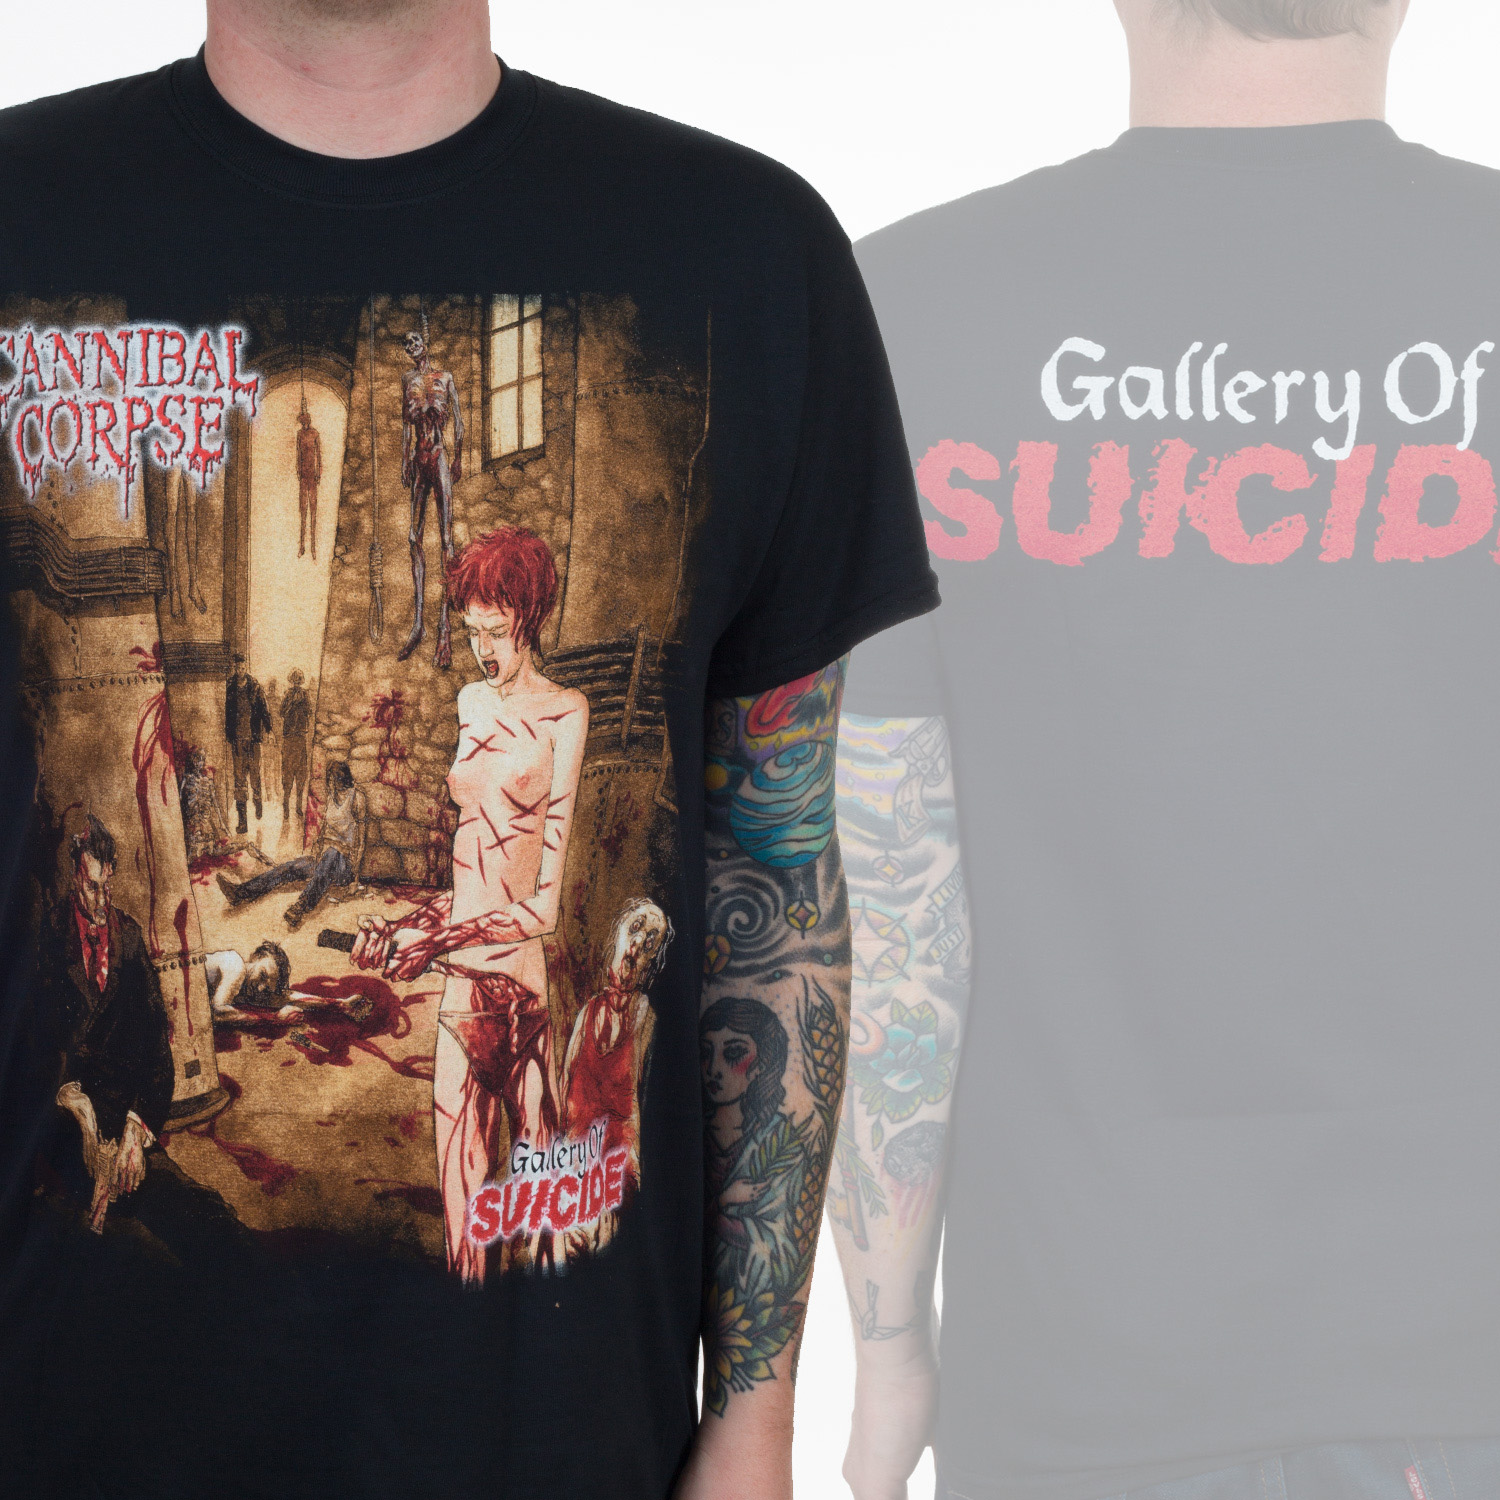 Gallery Of Suicide